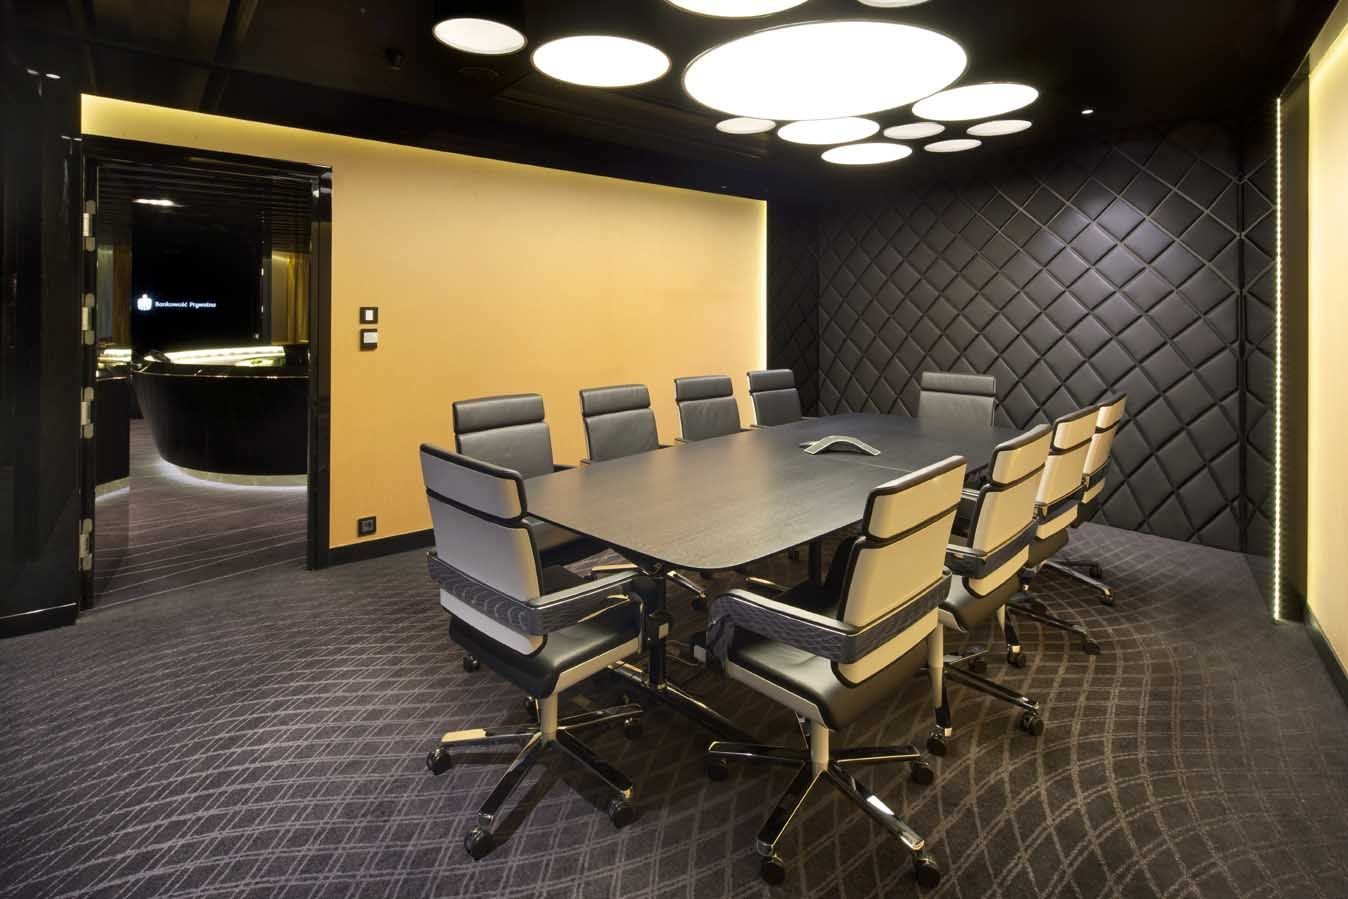 Conference Room Design Ideas interior modern coolest conference rooms perfect conference room design ideas with interesting recessed ceiling light Interior Design Ideas Home Design Office Meeting Room Lighting